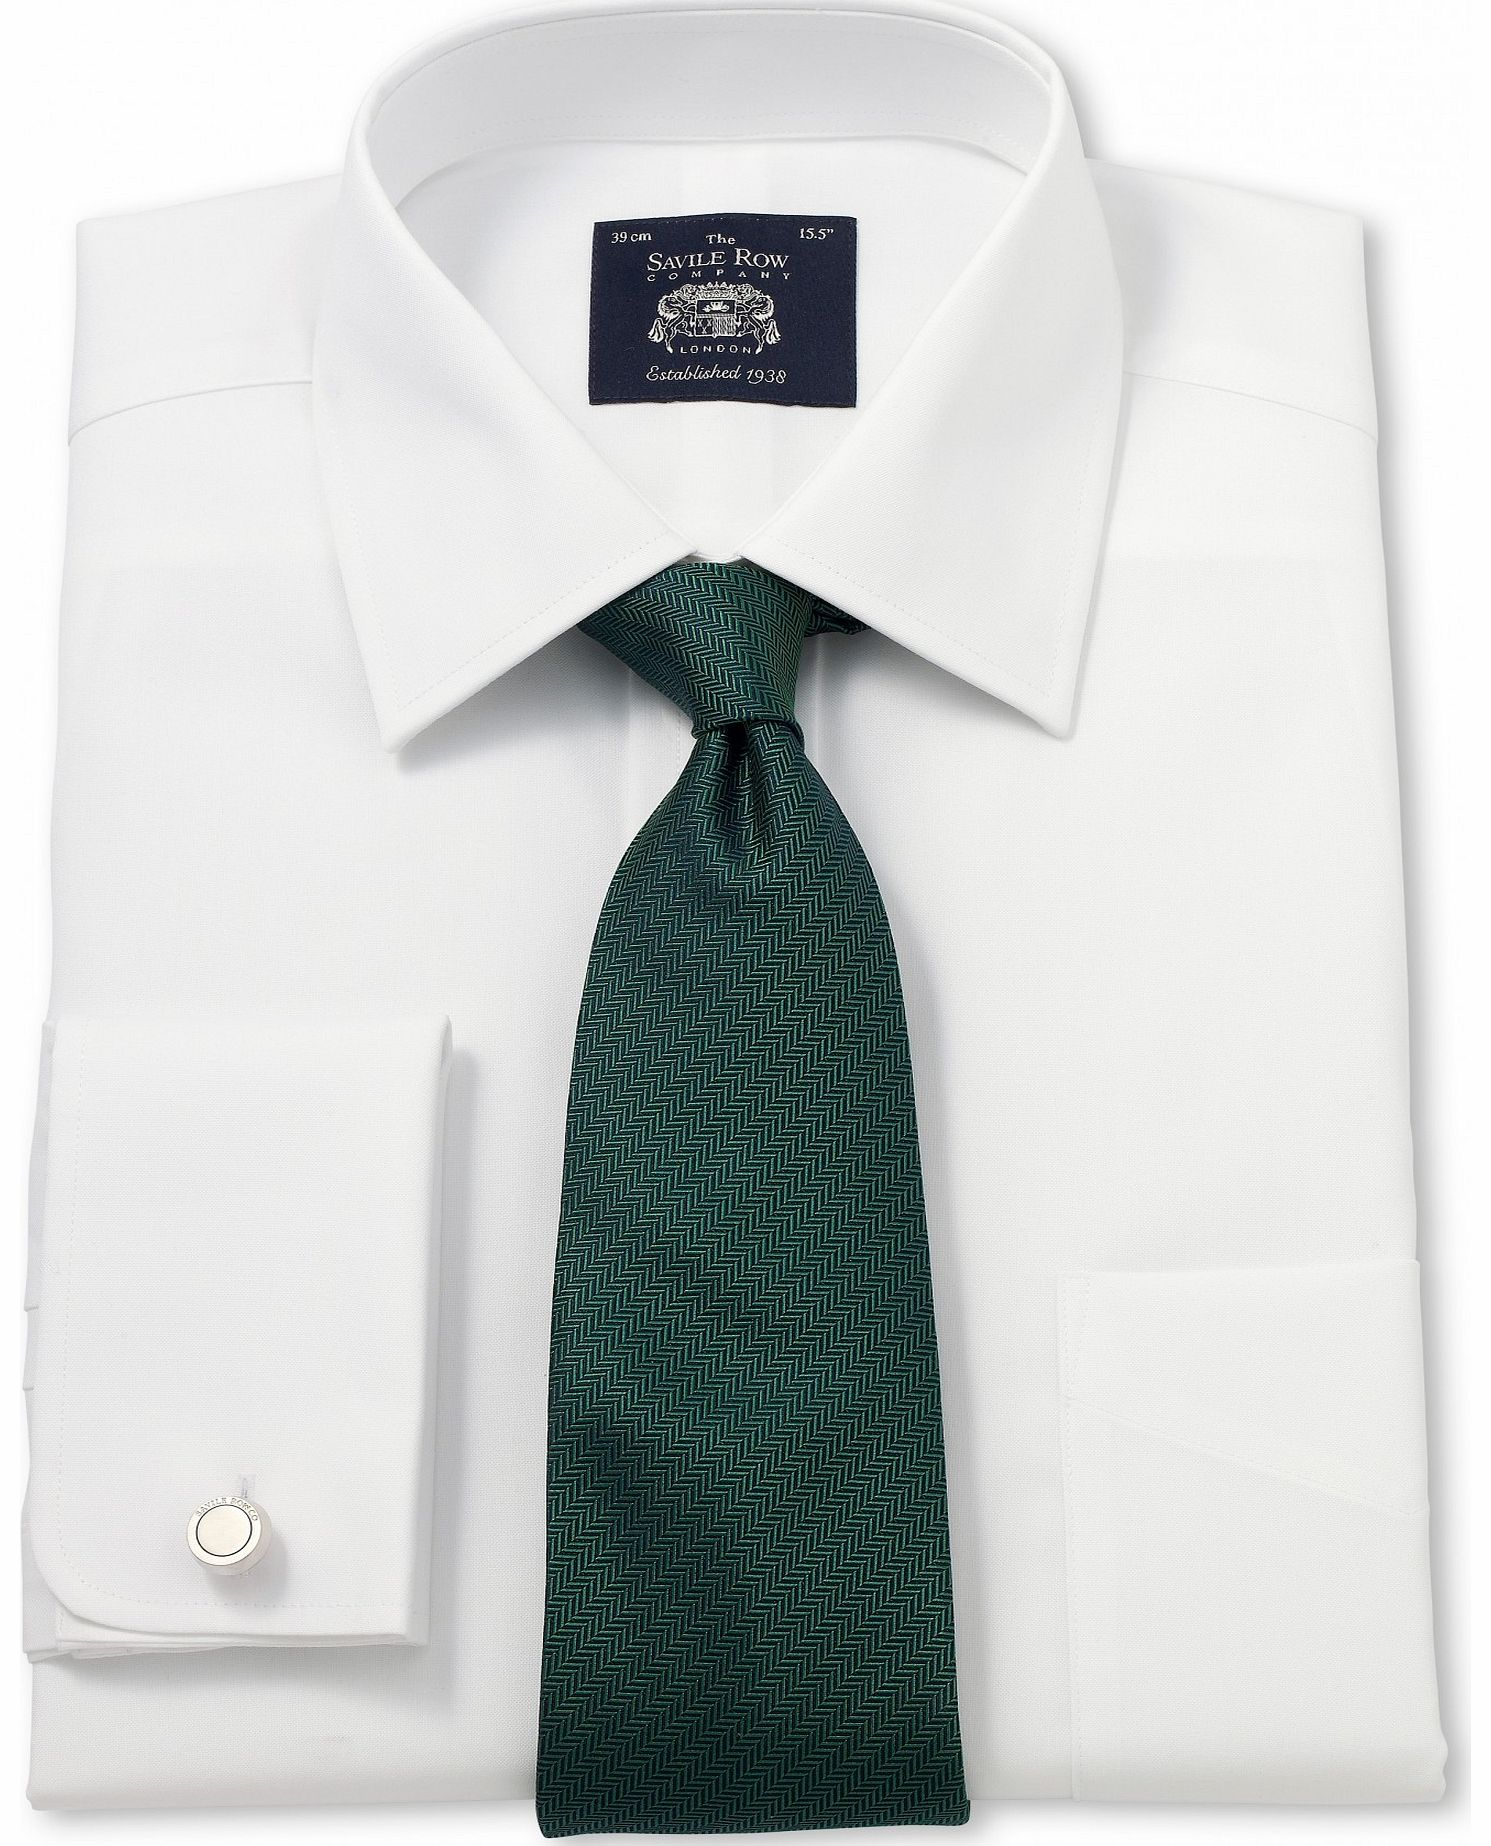 Savile Row Company White Non-Iron Classic Fit Shirt 19`` Standard & product image